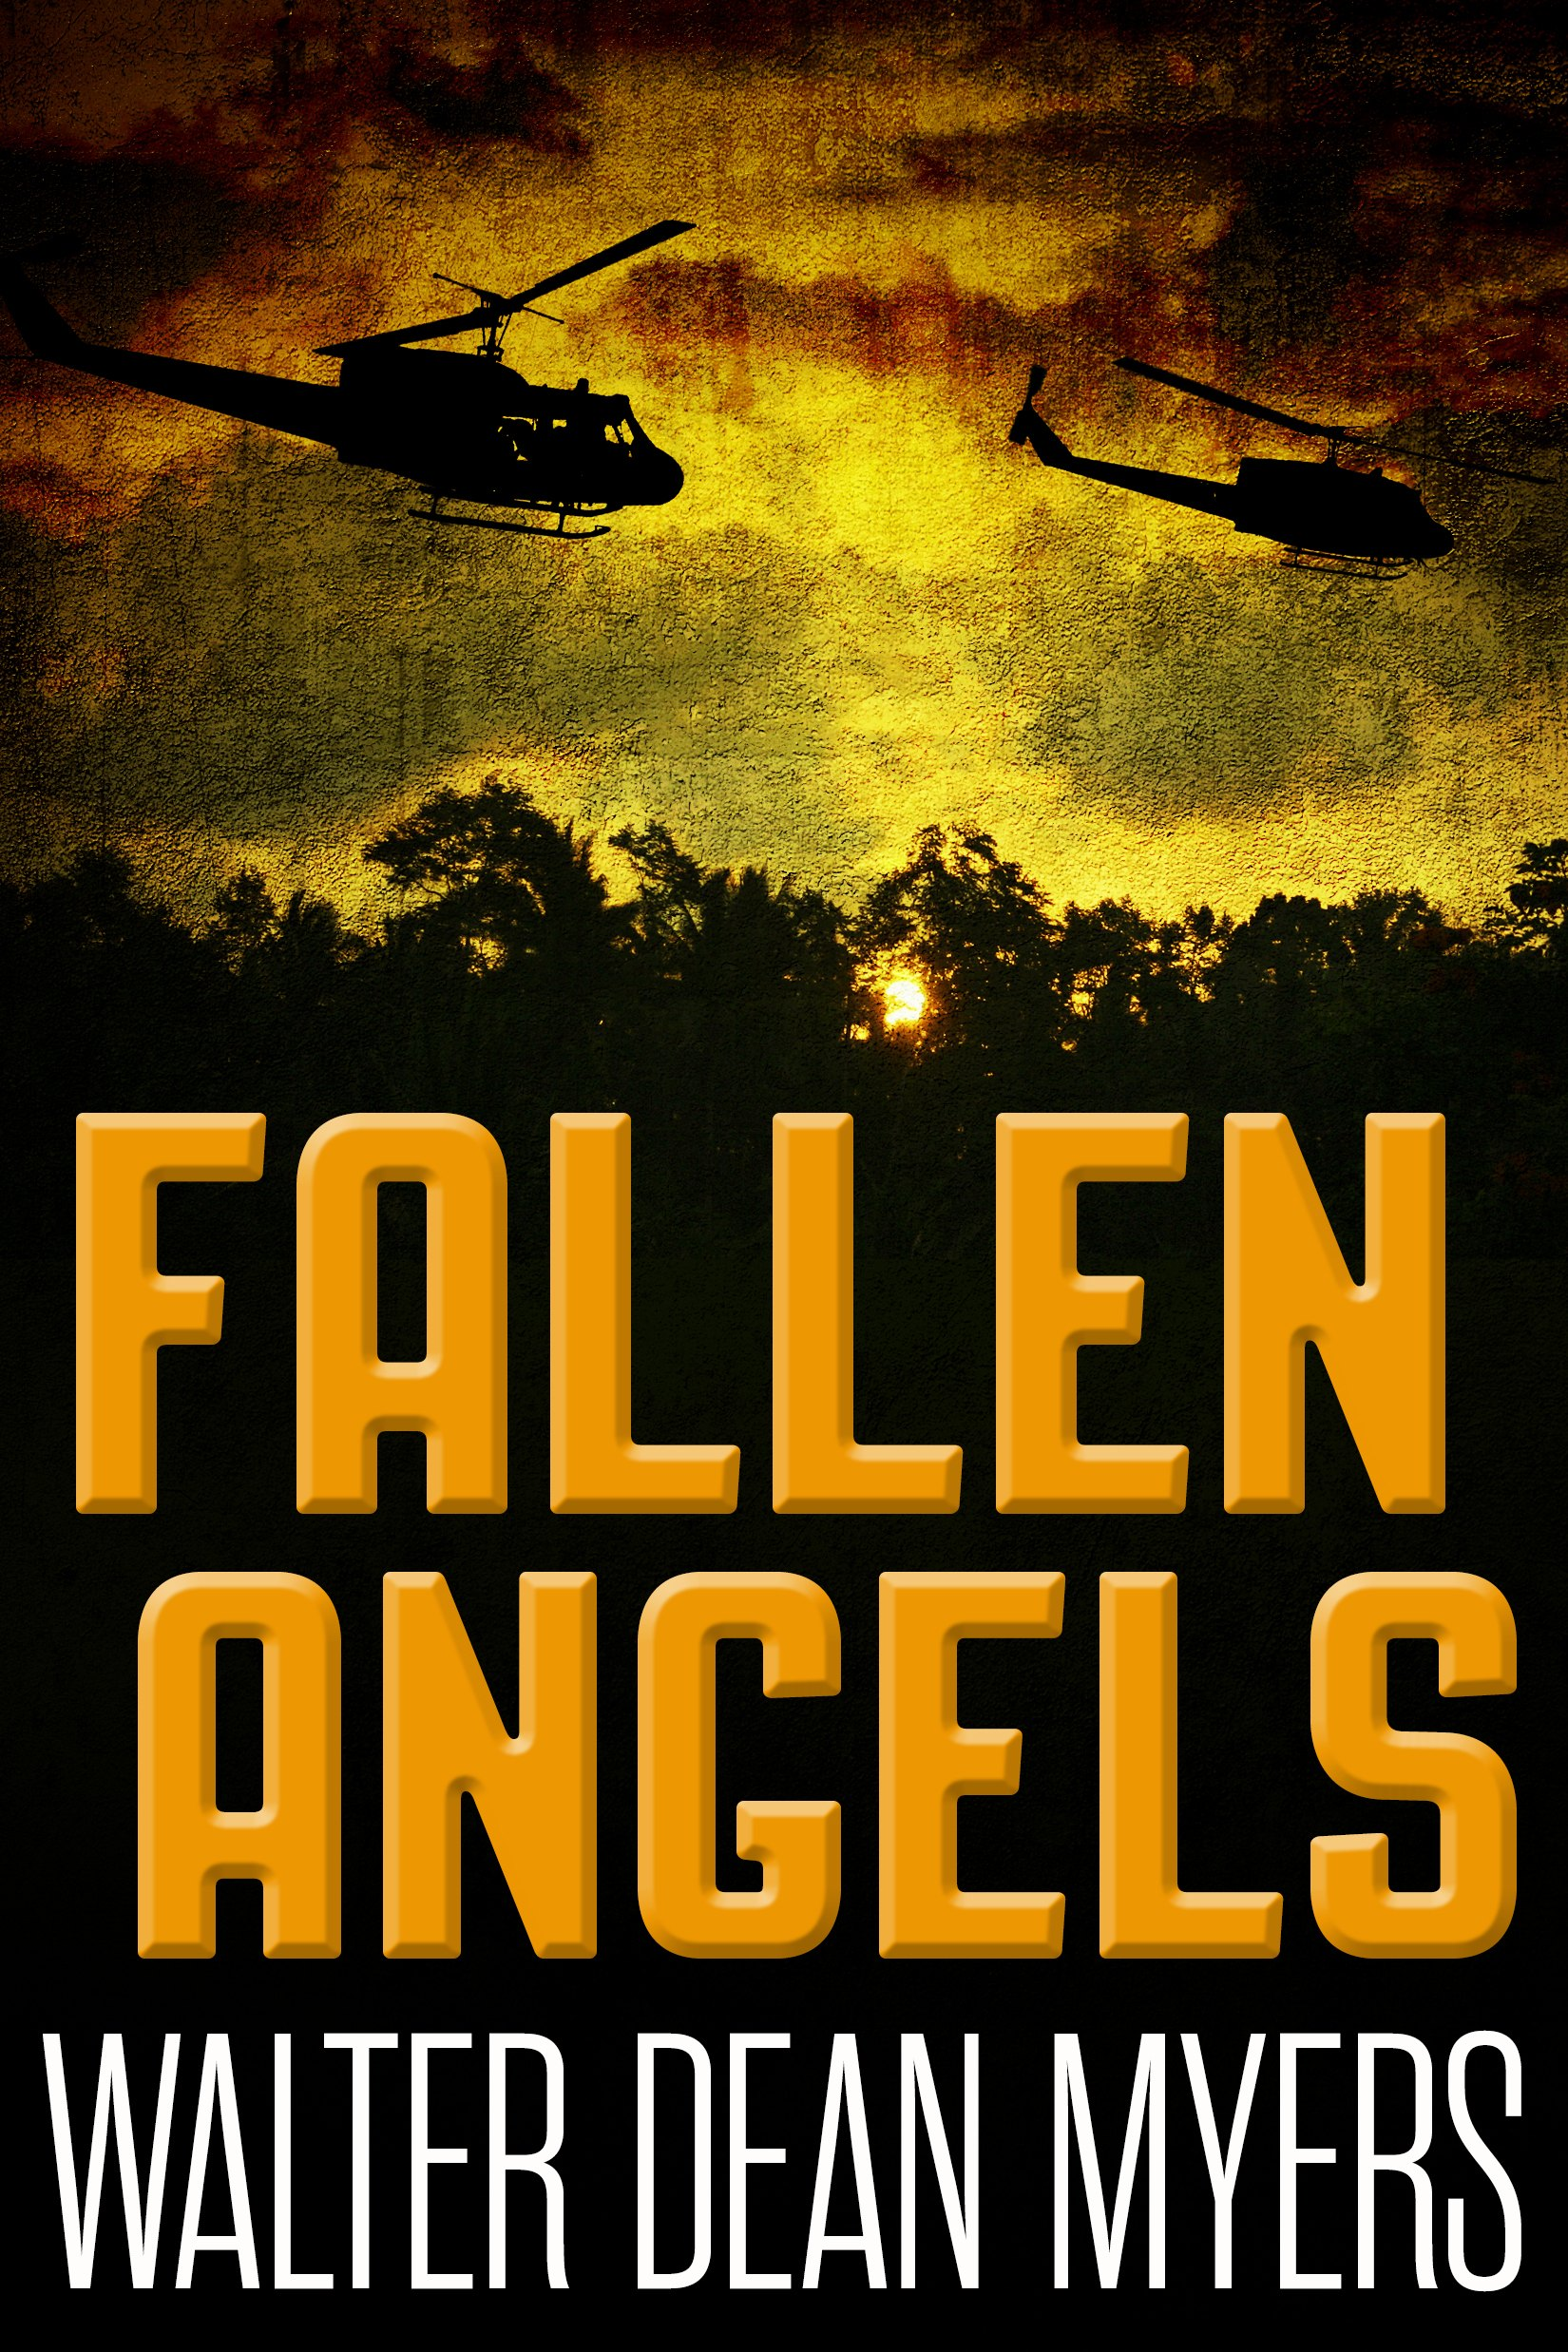 a literary analysis of the fallen angels by walter dean myers A useful book for any literature tie-in with a history class studying war or racism source used: our own critique.